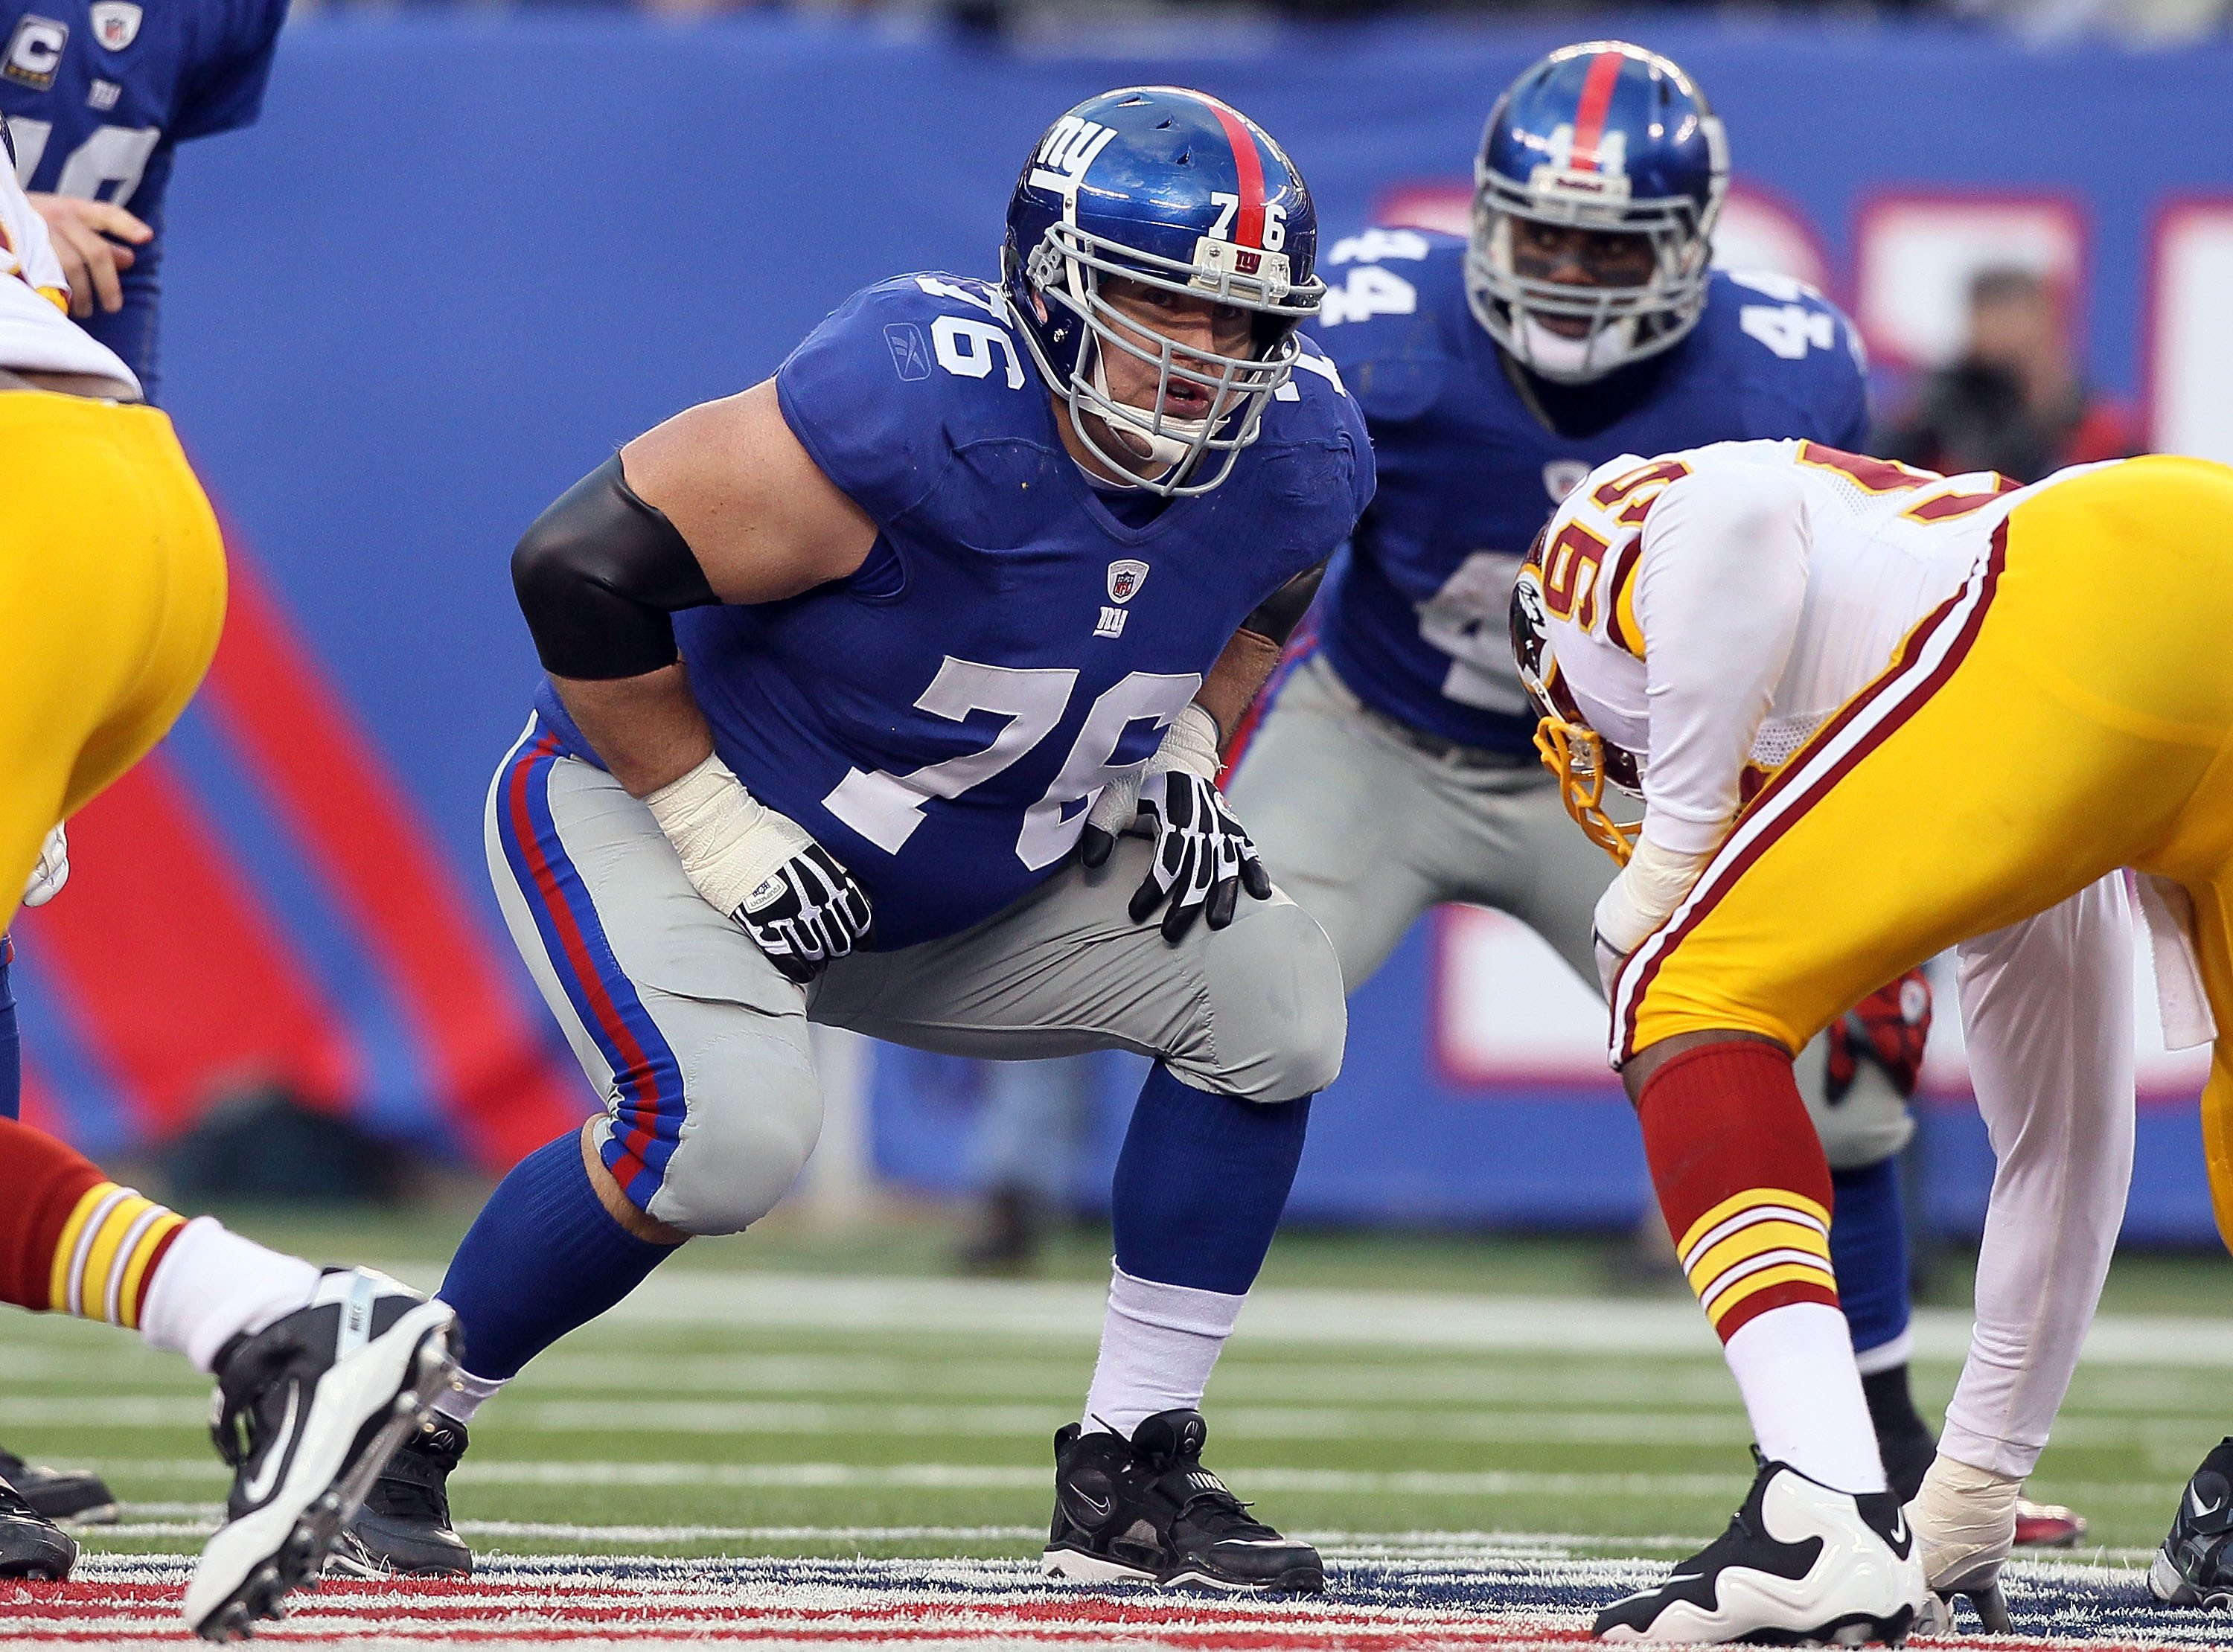 EAST RUTHERFORD, NJ - DECEMBER 05:  Chris Snee #76 of the New York Giants in action against the Washington Redskins on December 5, 2010 at the New Meadowlands Stadium in East Rutherford, New Jersey. The Giants defeated the Redskins 31-7.  (Photo by Jim Mc